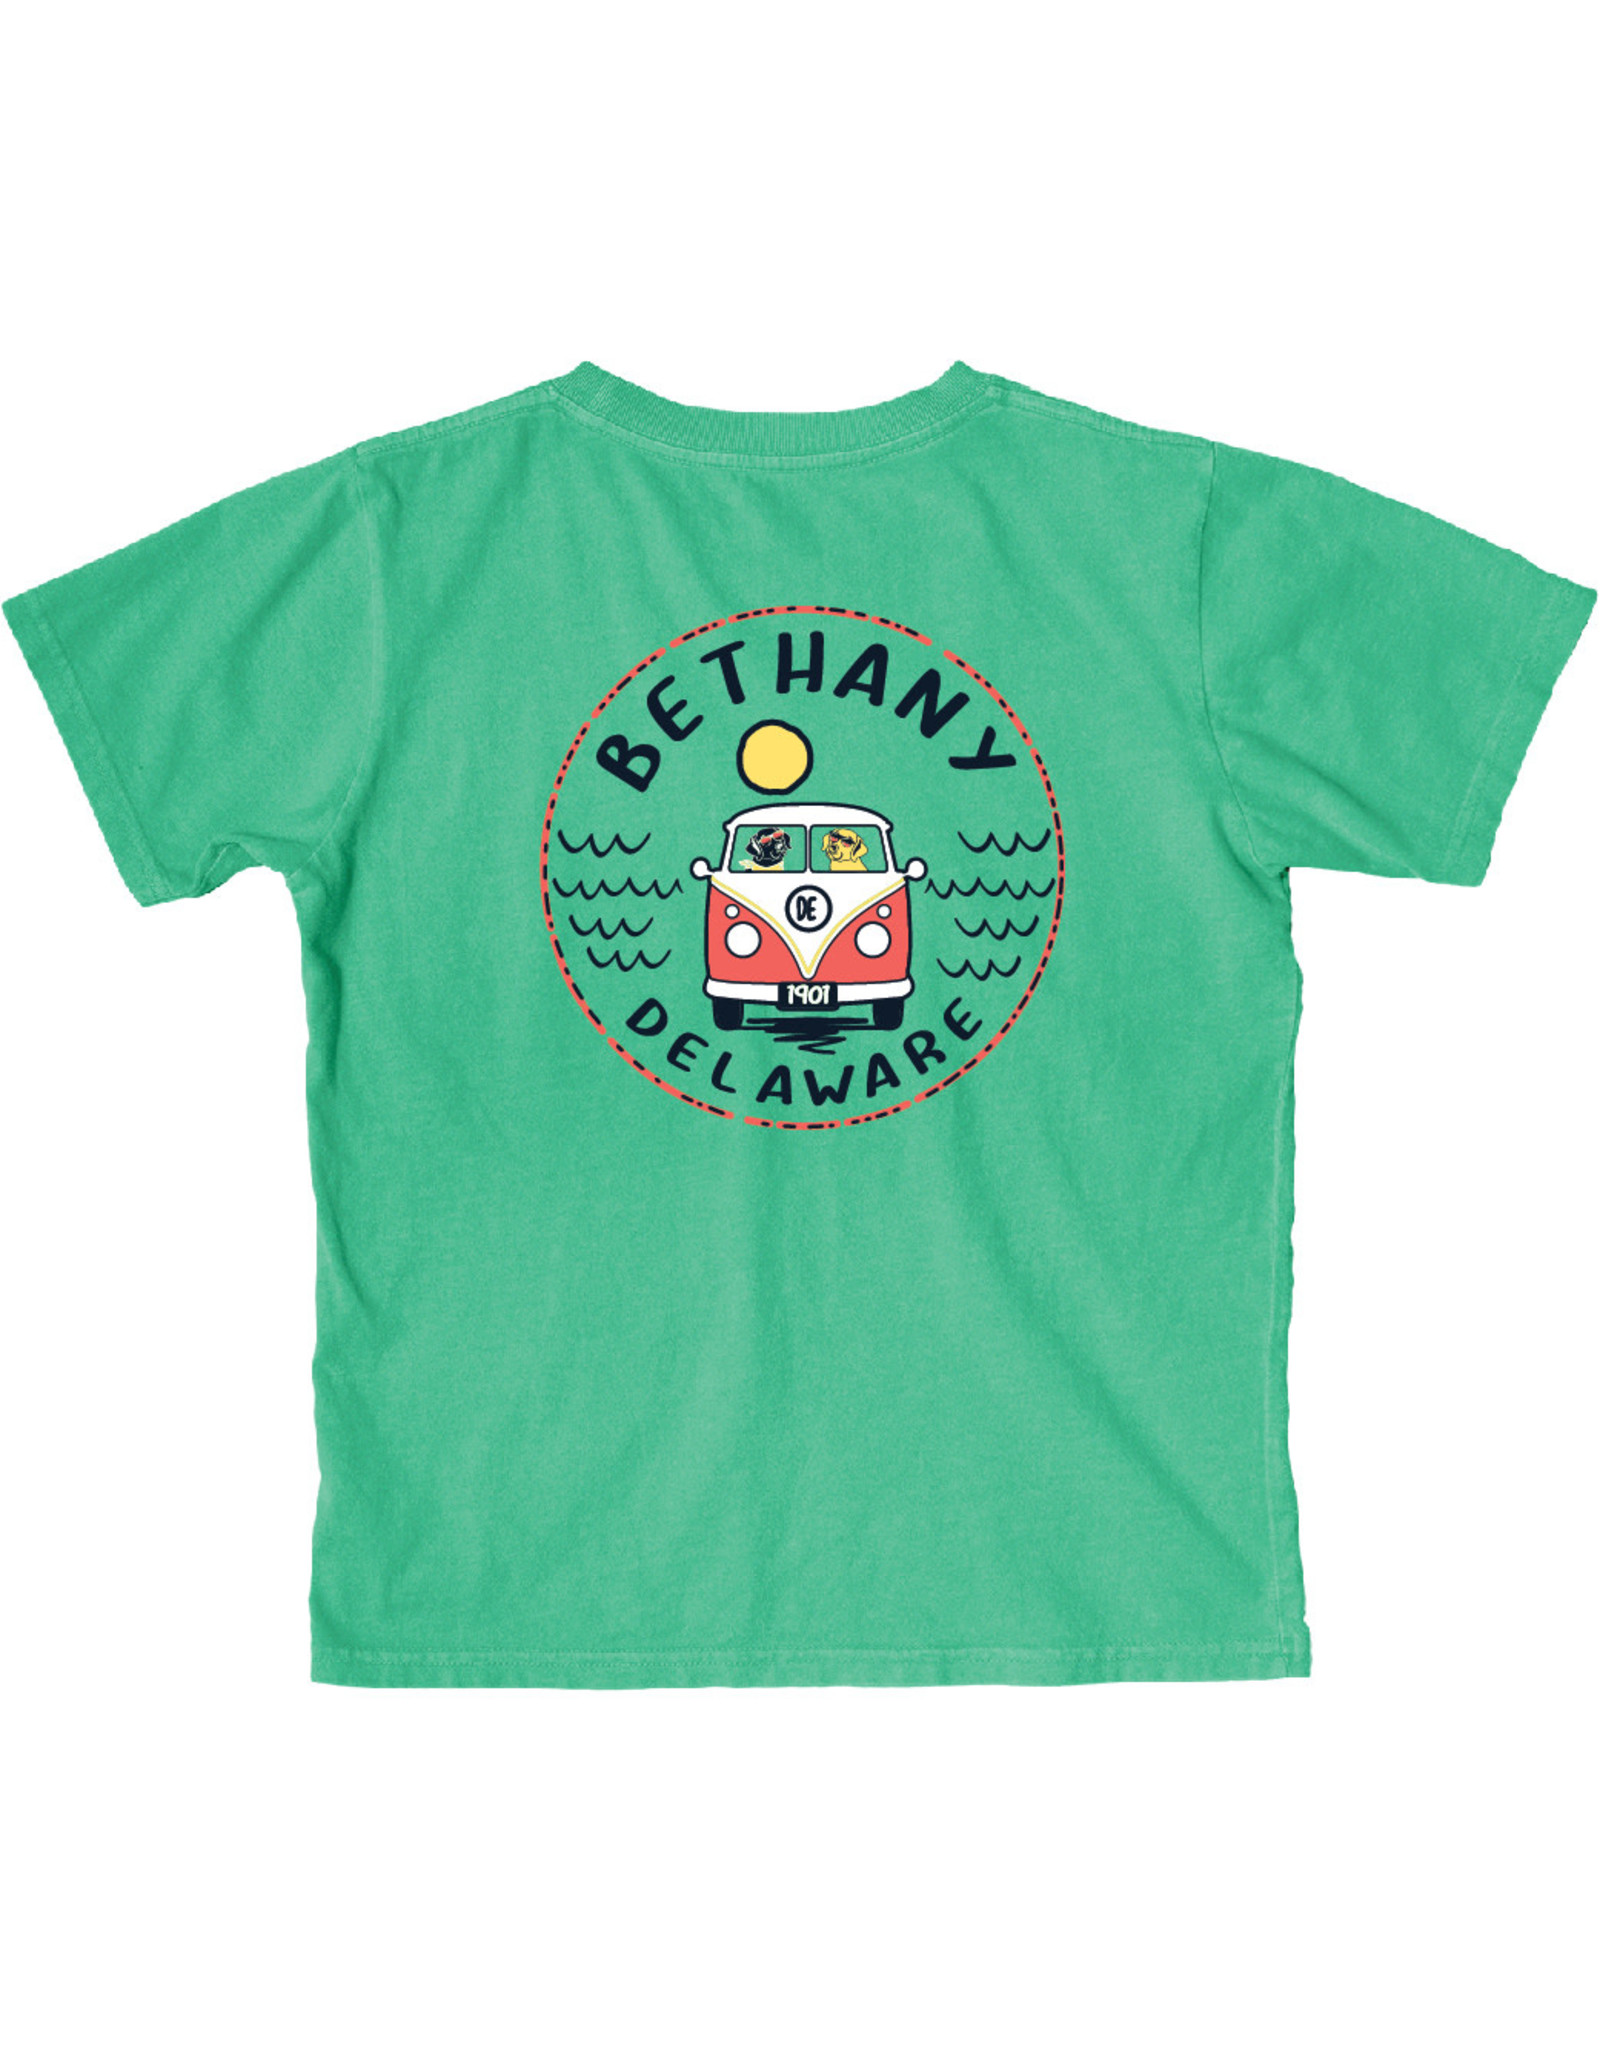 BLUE 84 BETHANY CONCURRENCE BUS/DOGS YOUTH SS TEE